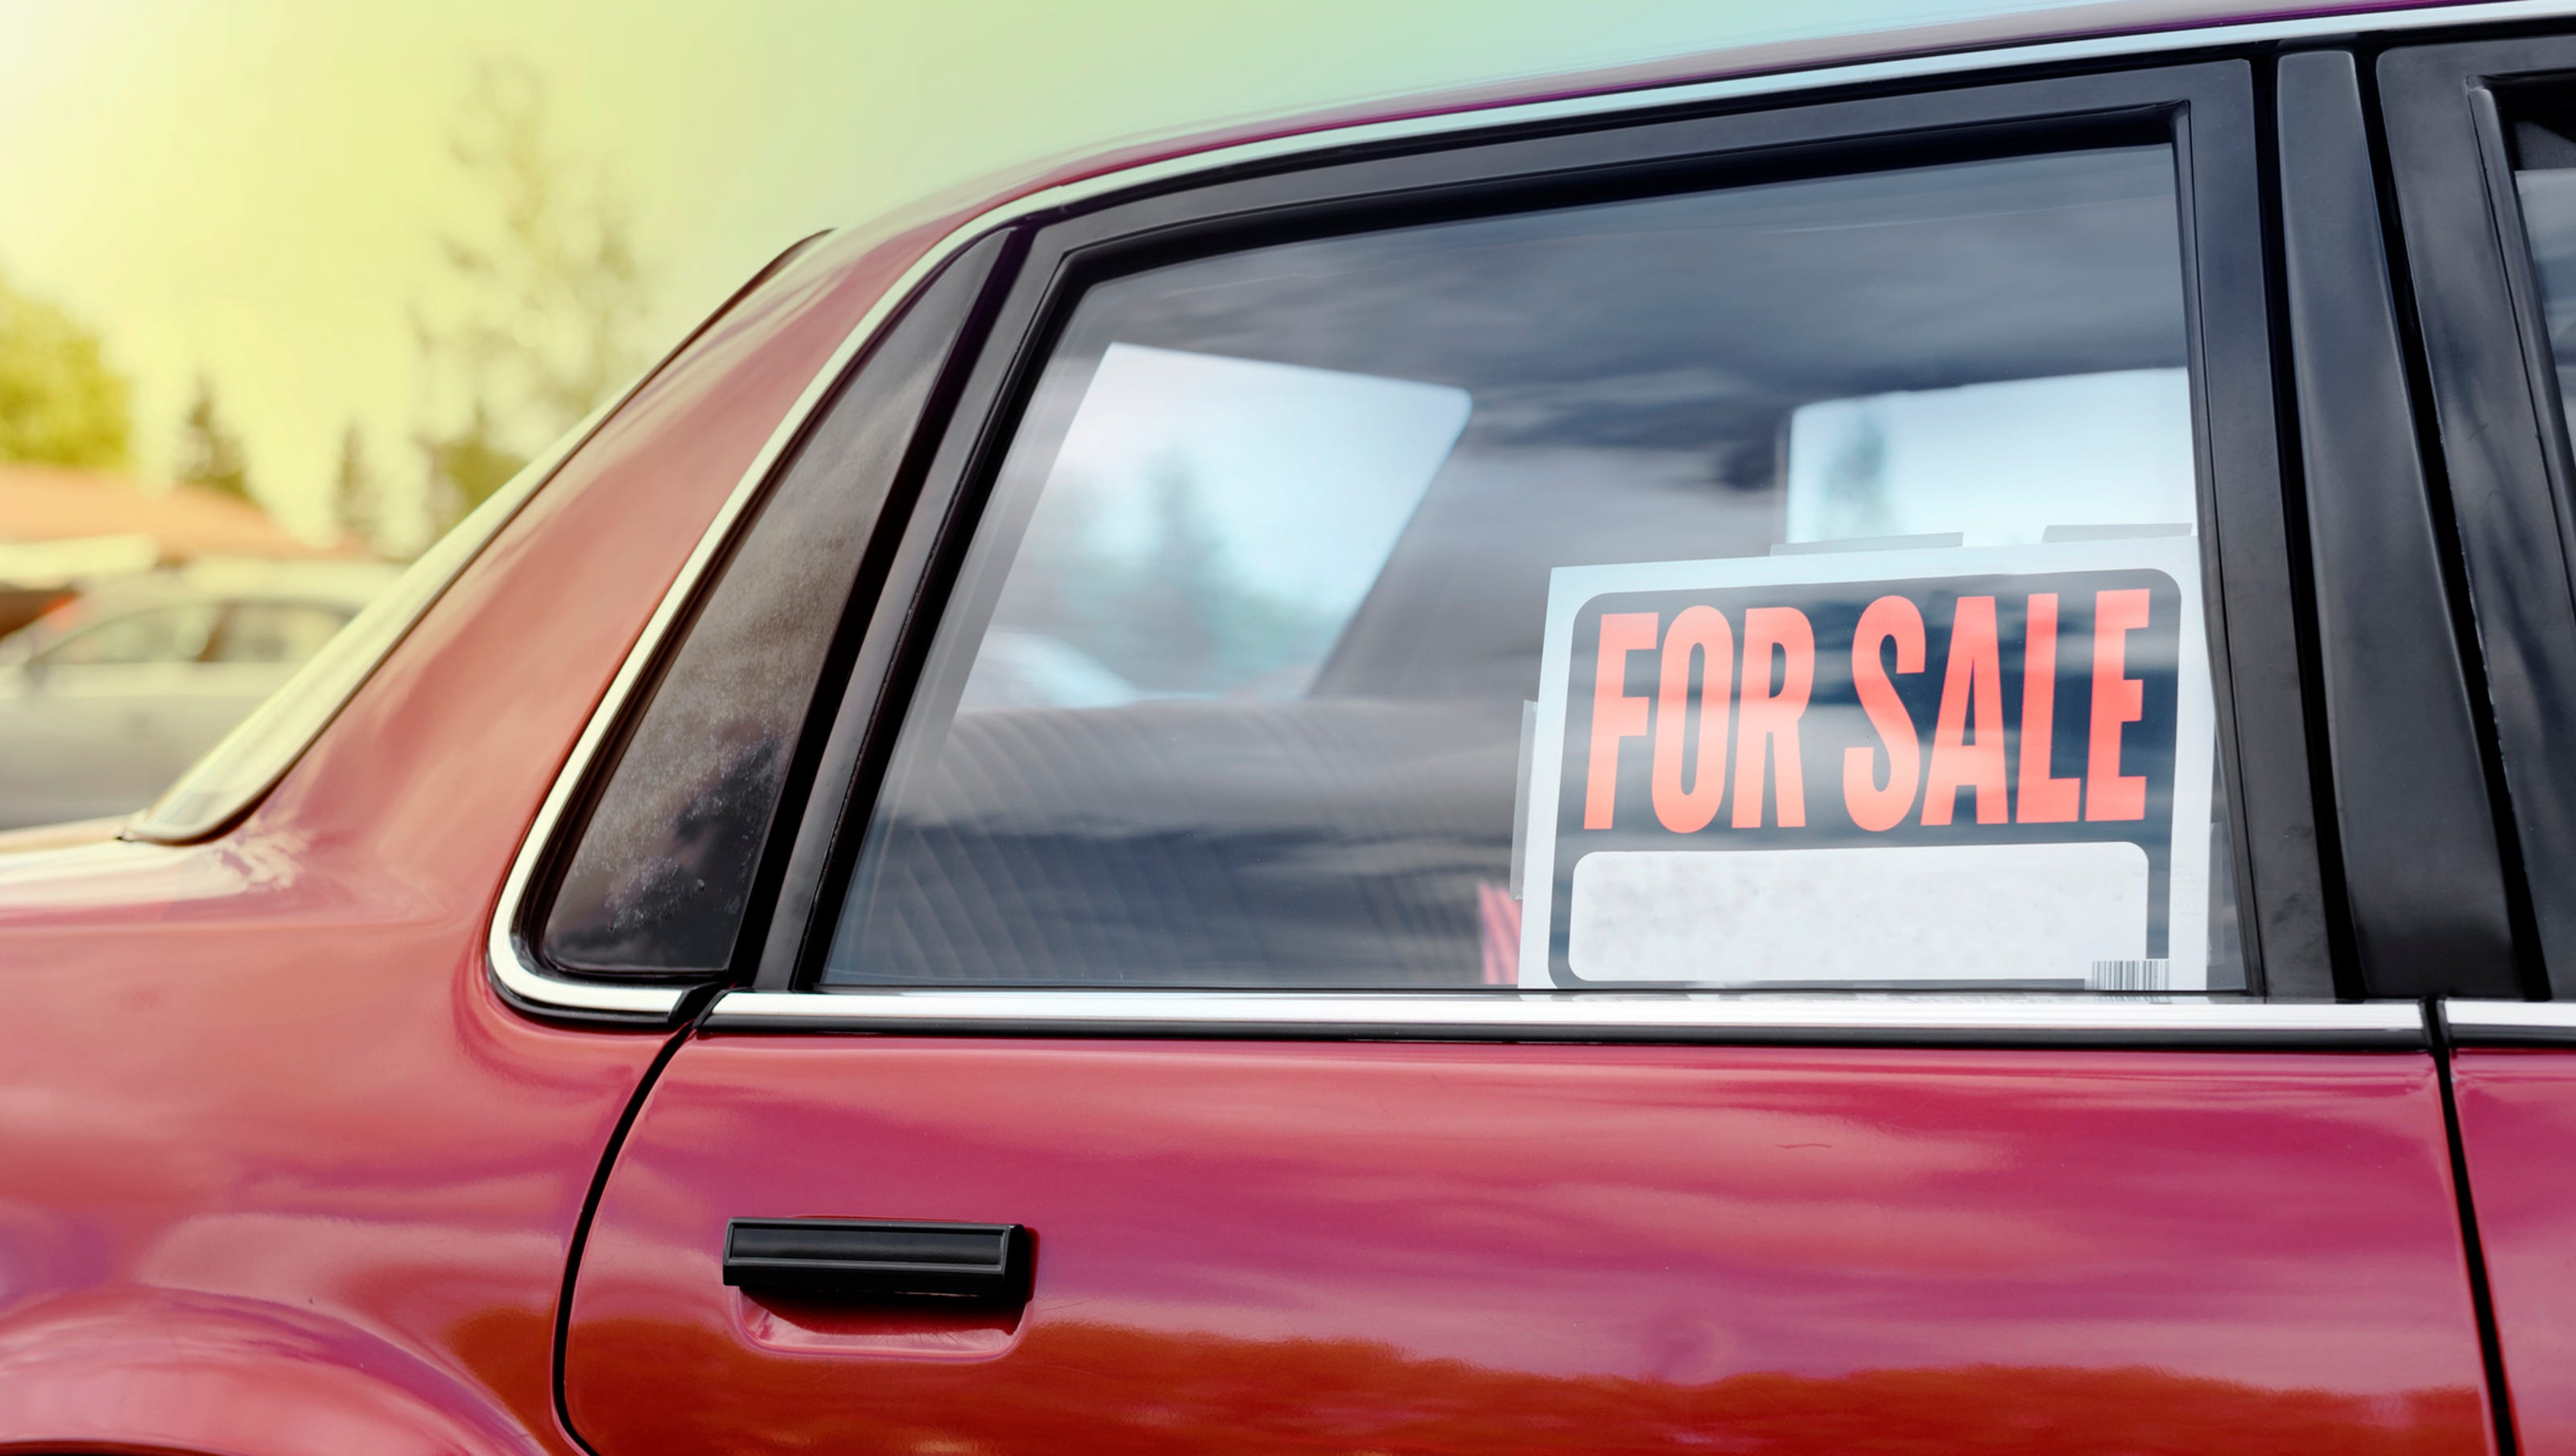 Tips on how to find a cheap reliable used car to